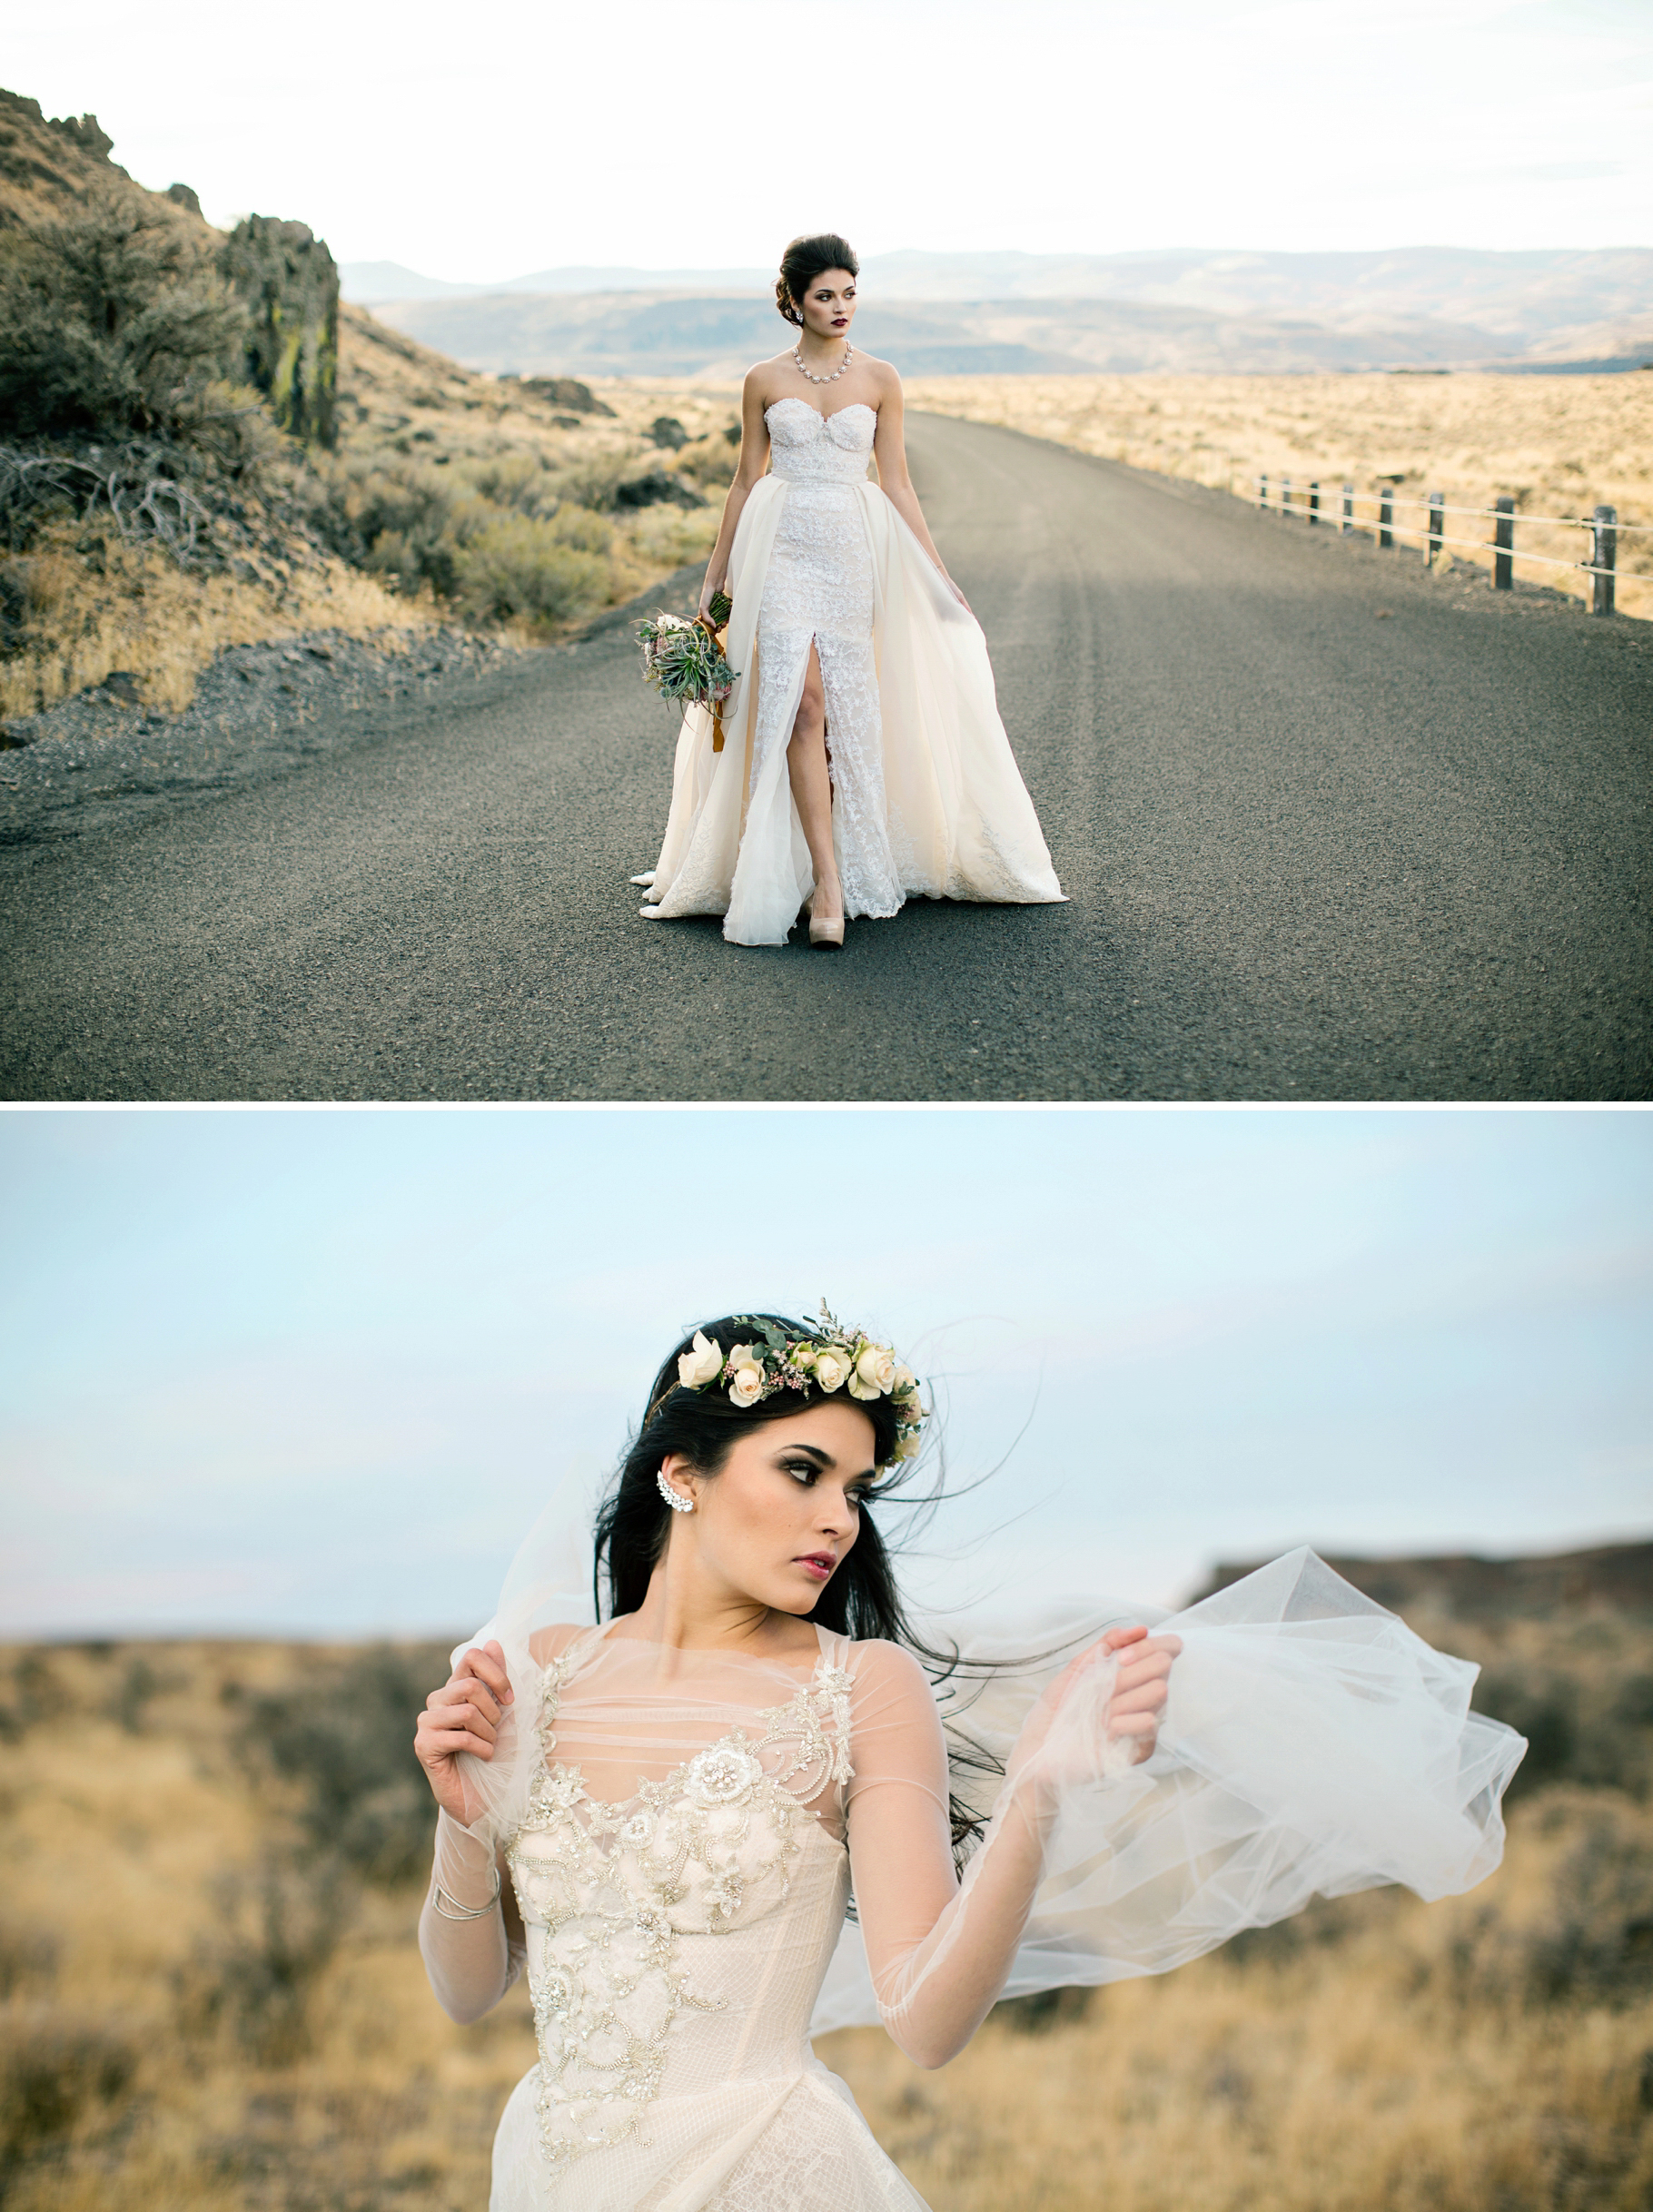 80-2015-Photographer-Year-in-Review-Gahlia-Lahav-Editorial-Seattle-Wedding-Photography-by-Betty-Elaine